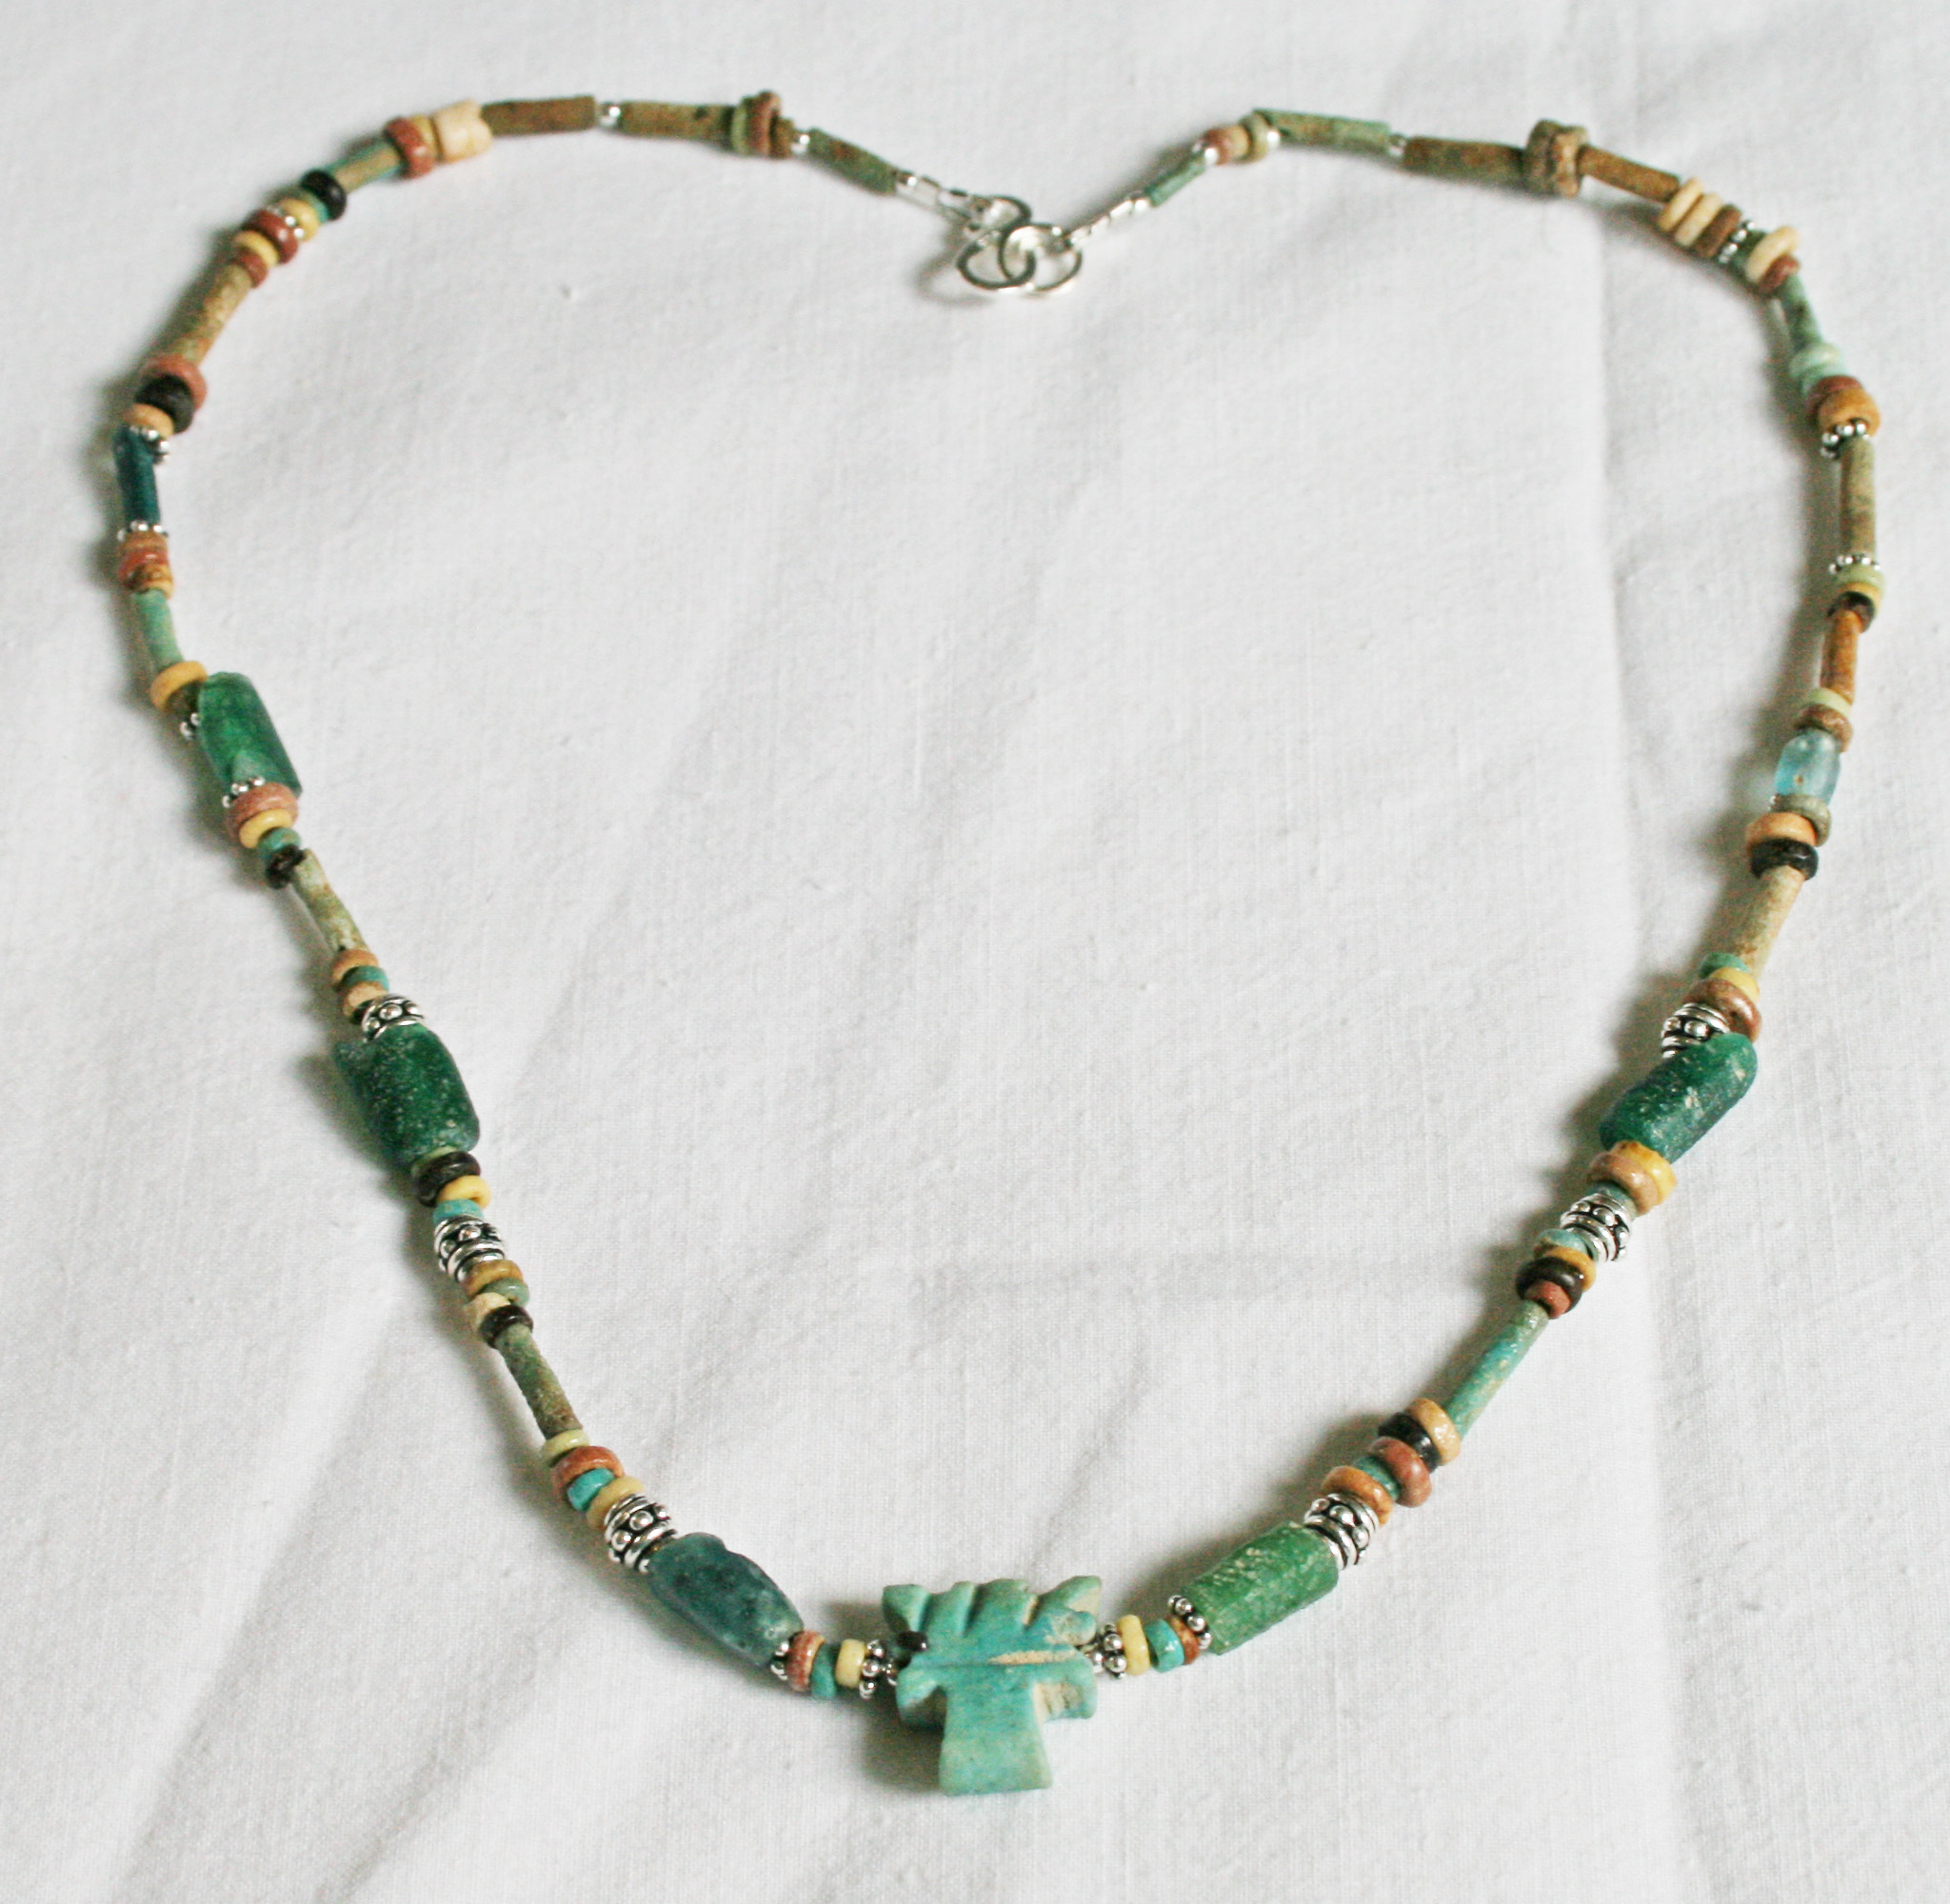 Roman necklace